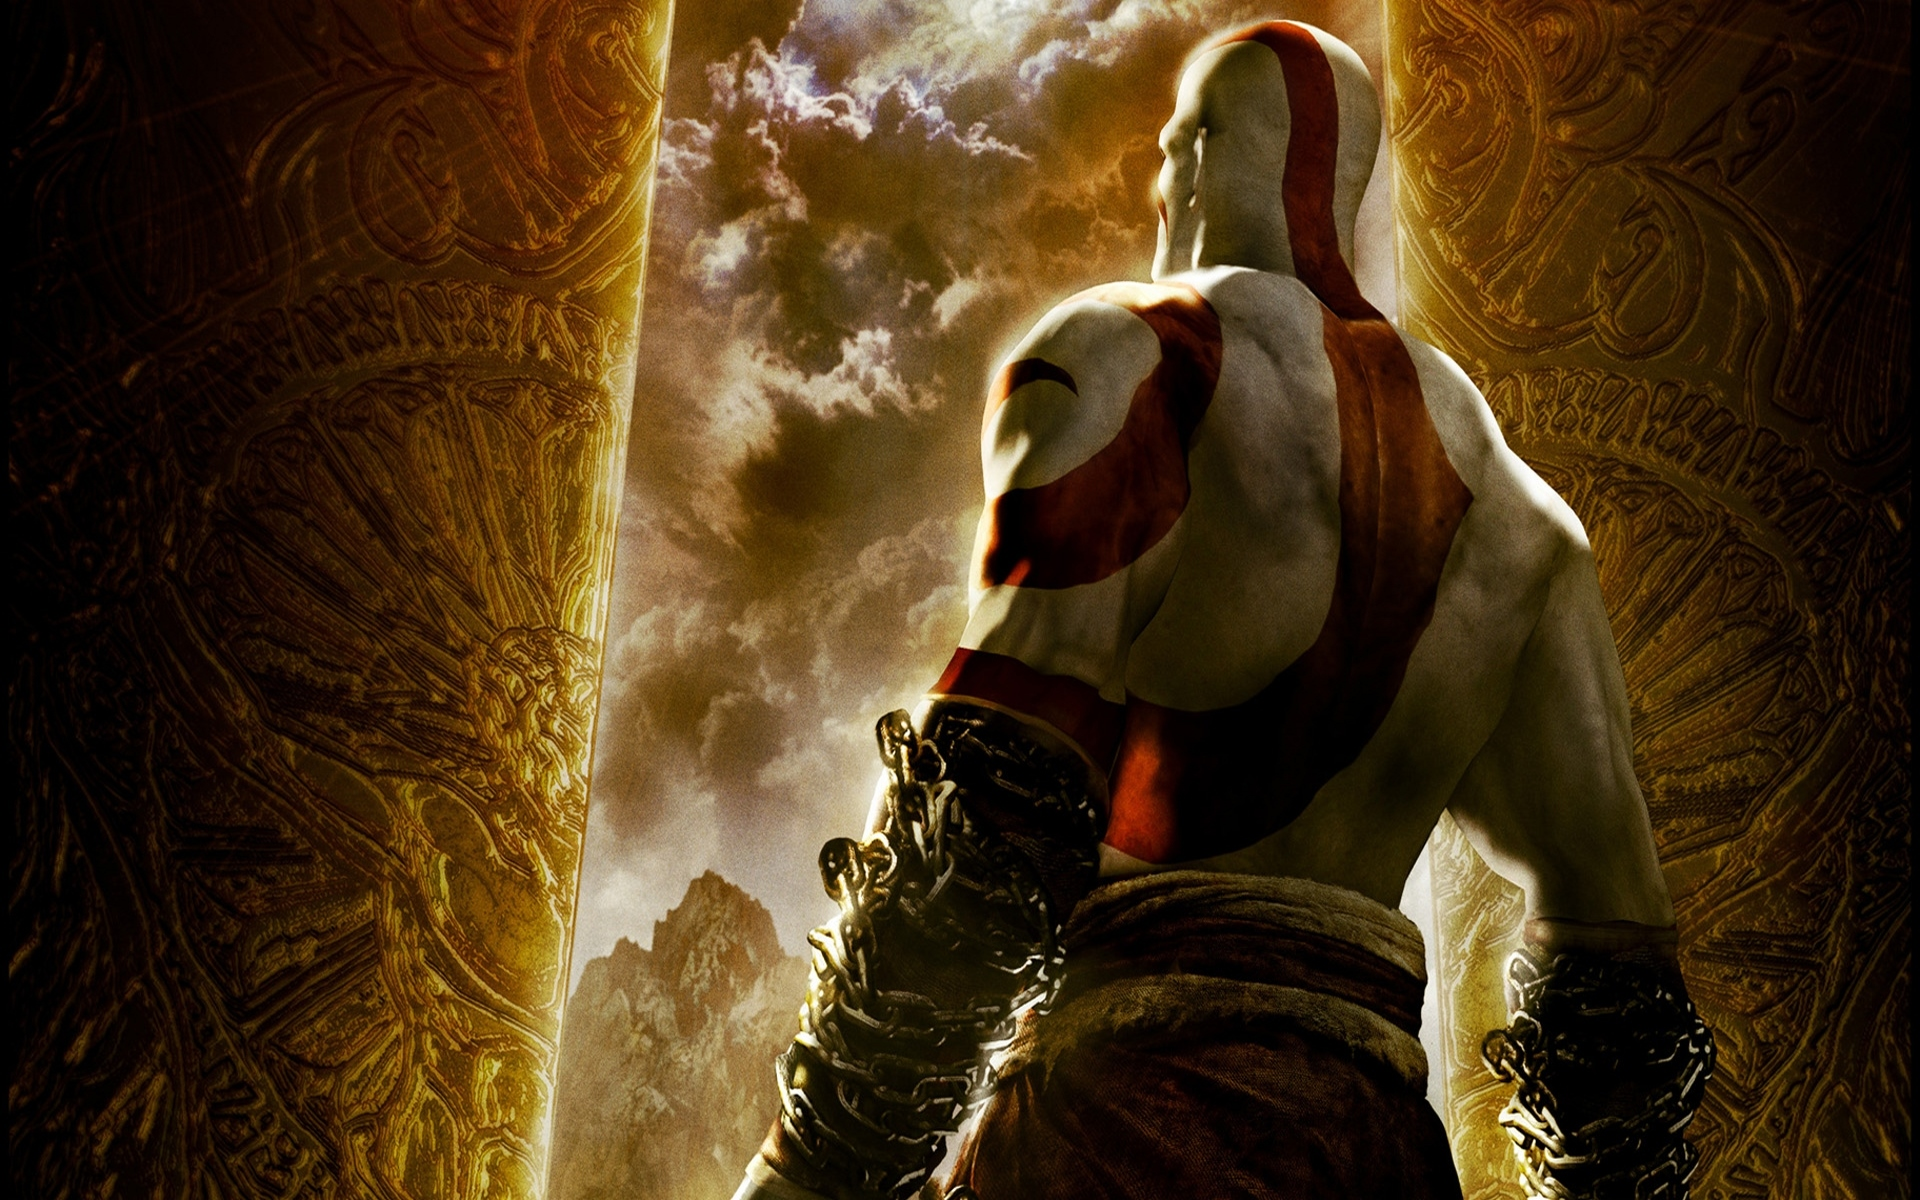 1920x1200 God of War: Chains of Olympus desktop PC and Mac